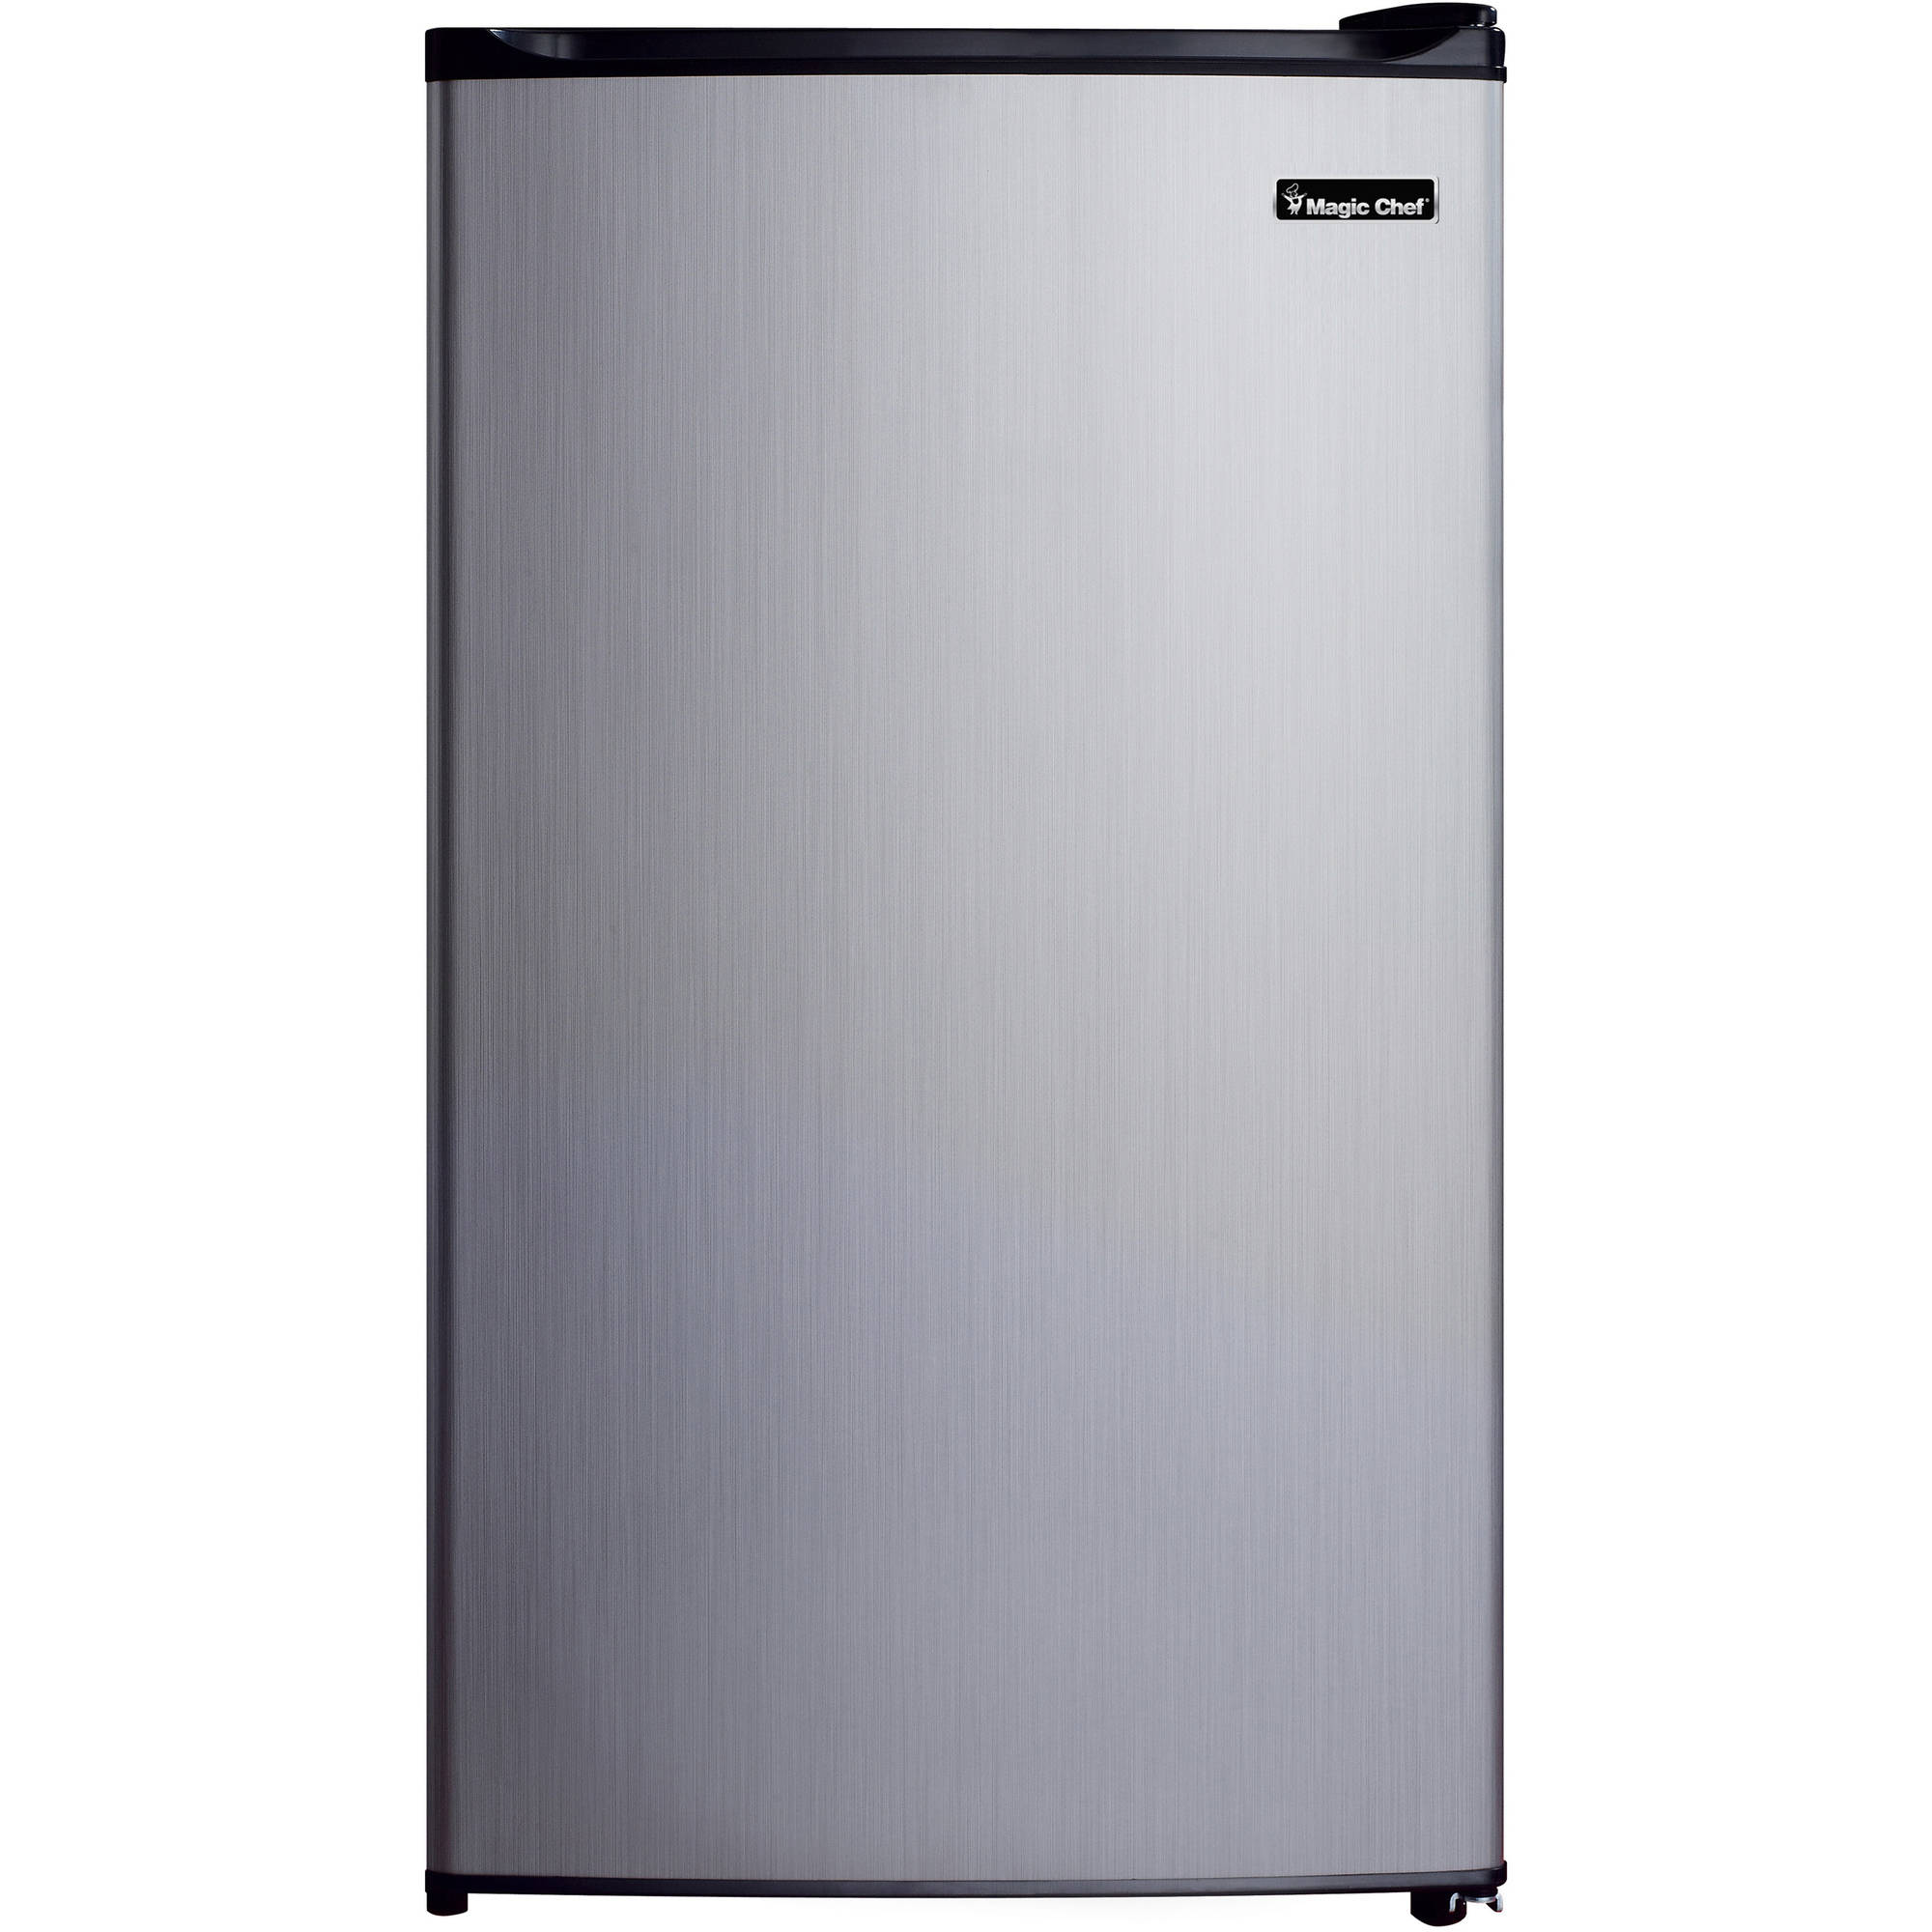 Magic Chef 3.5 cu ft Refrigerator, Stainless Look